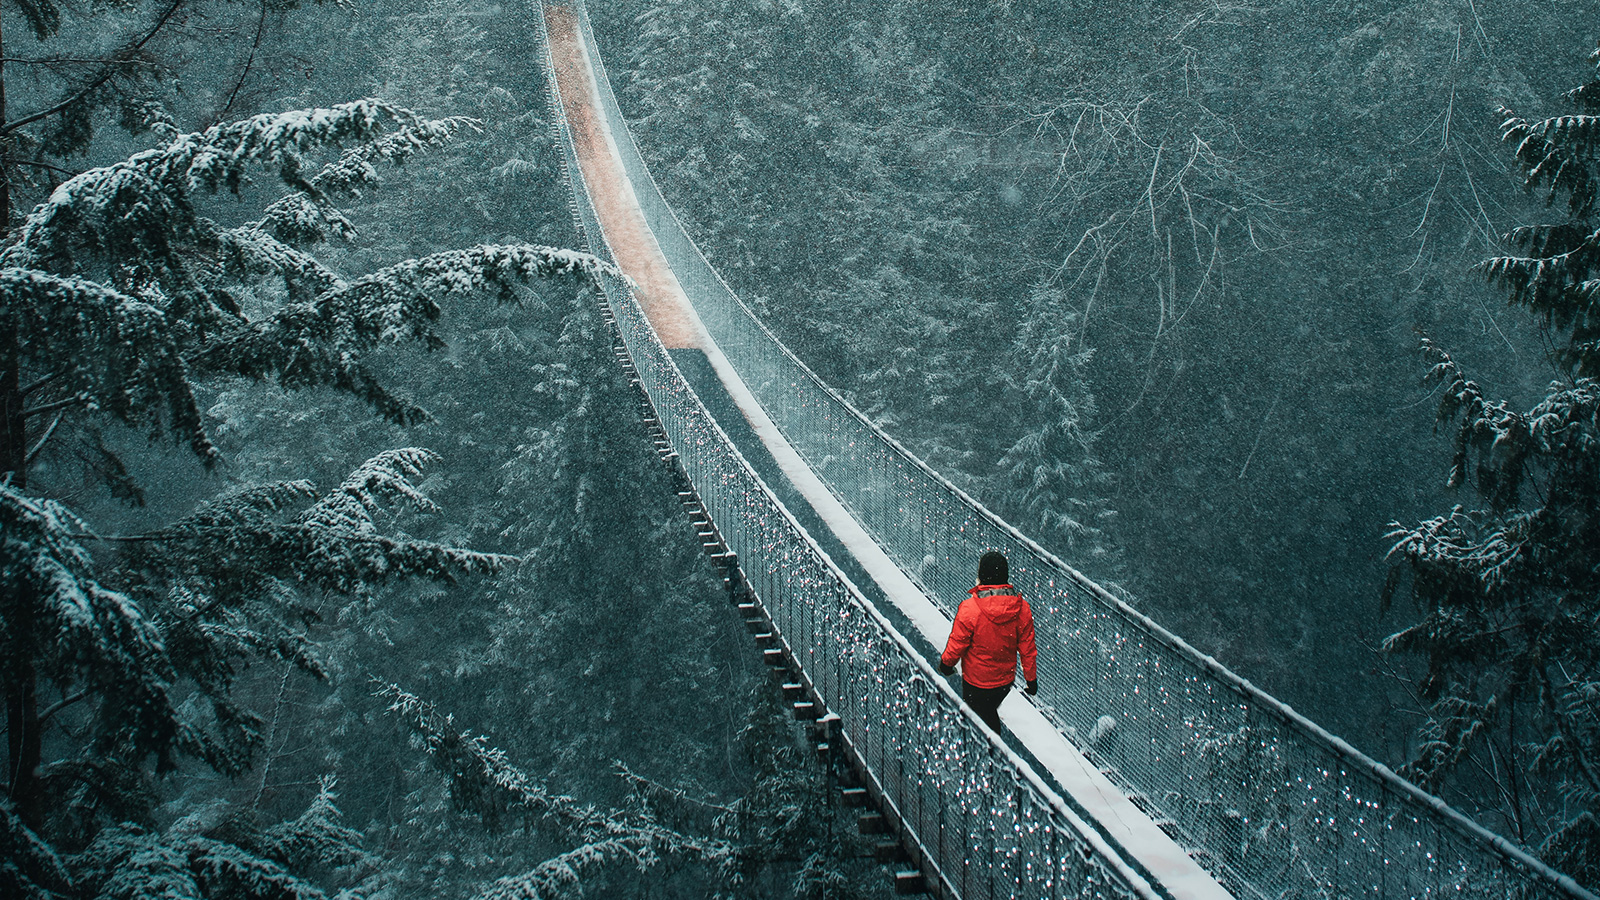 Man on suspension bridge